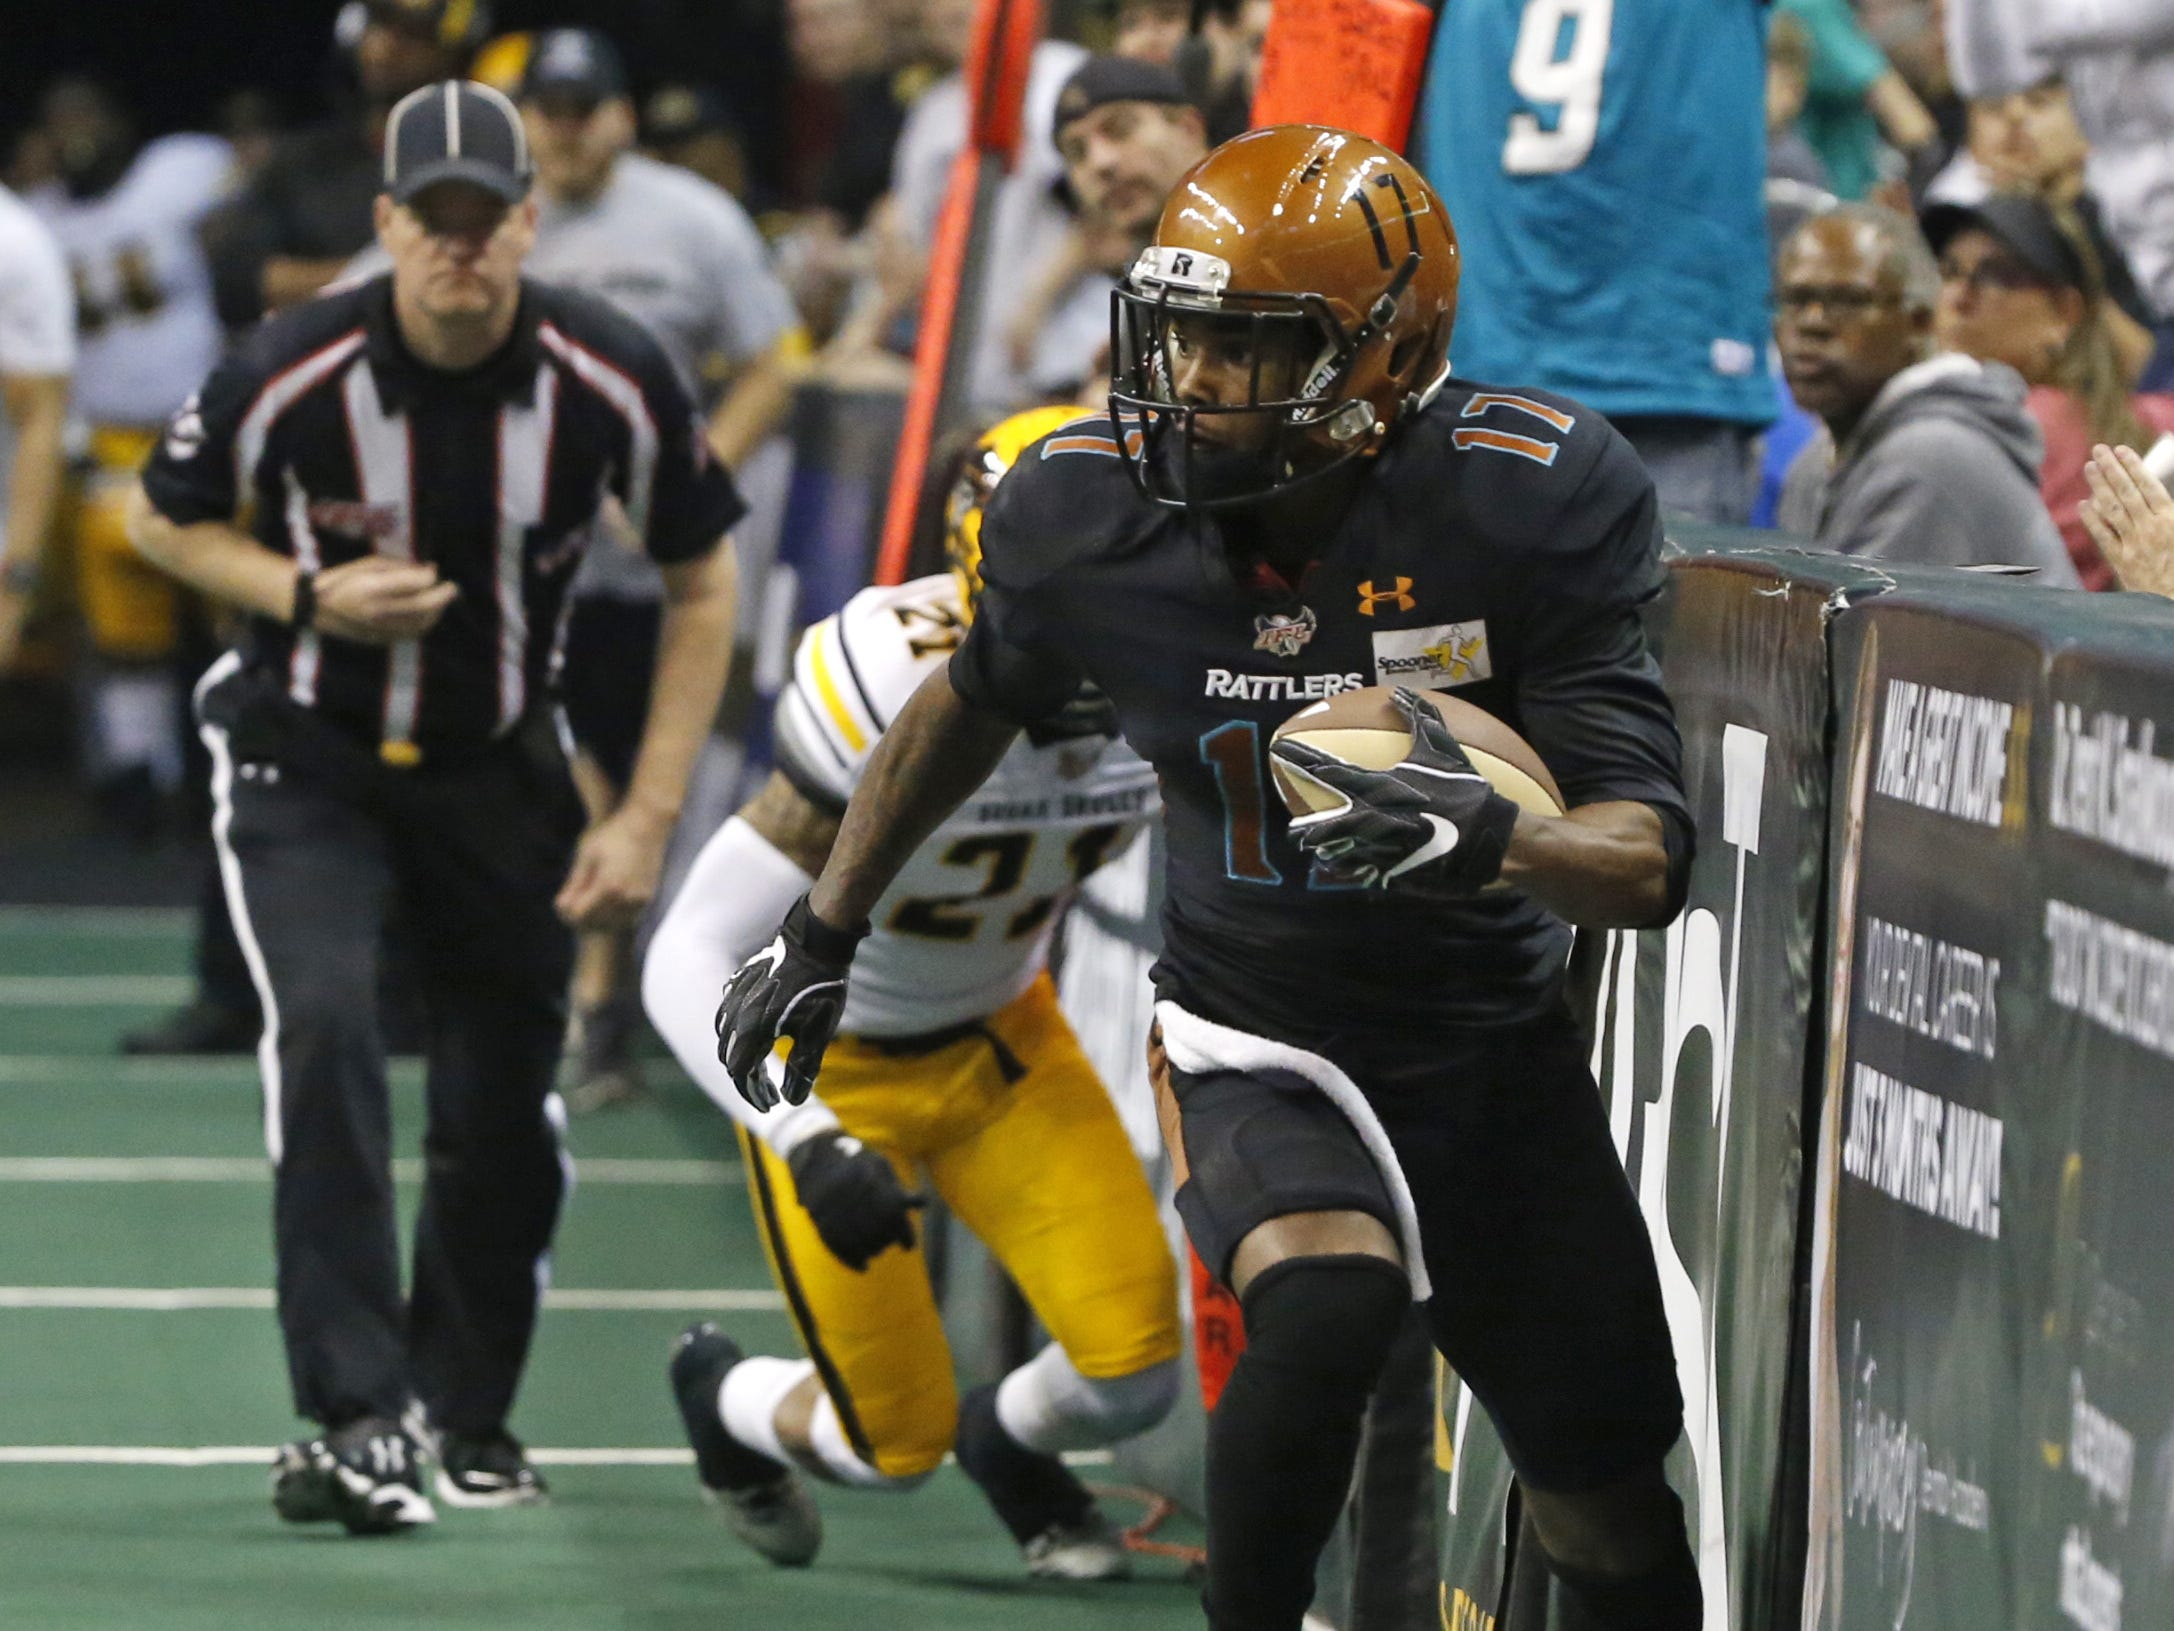 Rattlers' Desmond Epps (17) runs down the side of the field for a touchdown against the Sugar Skulls during the first half at Talking Stick Resort Arena in Phoenix, Ariz. on March 16, 2019.